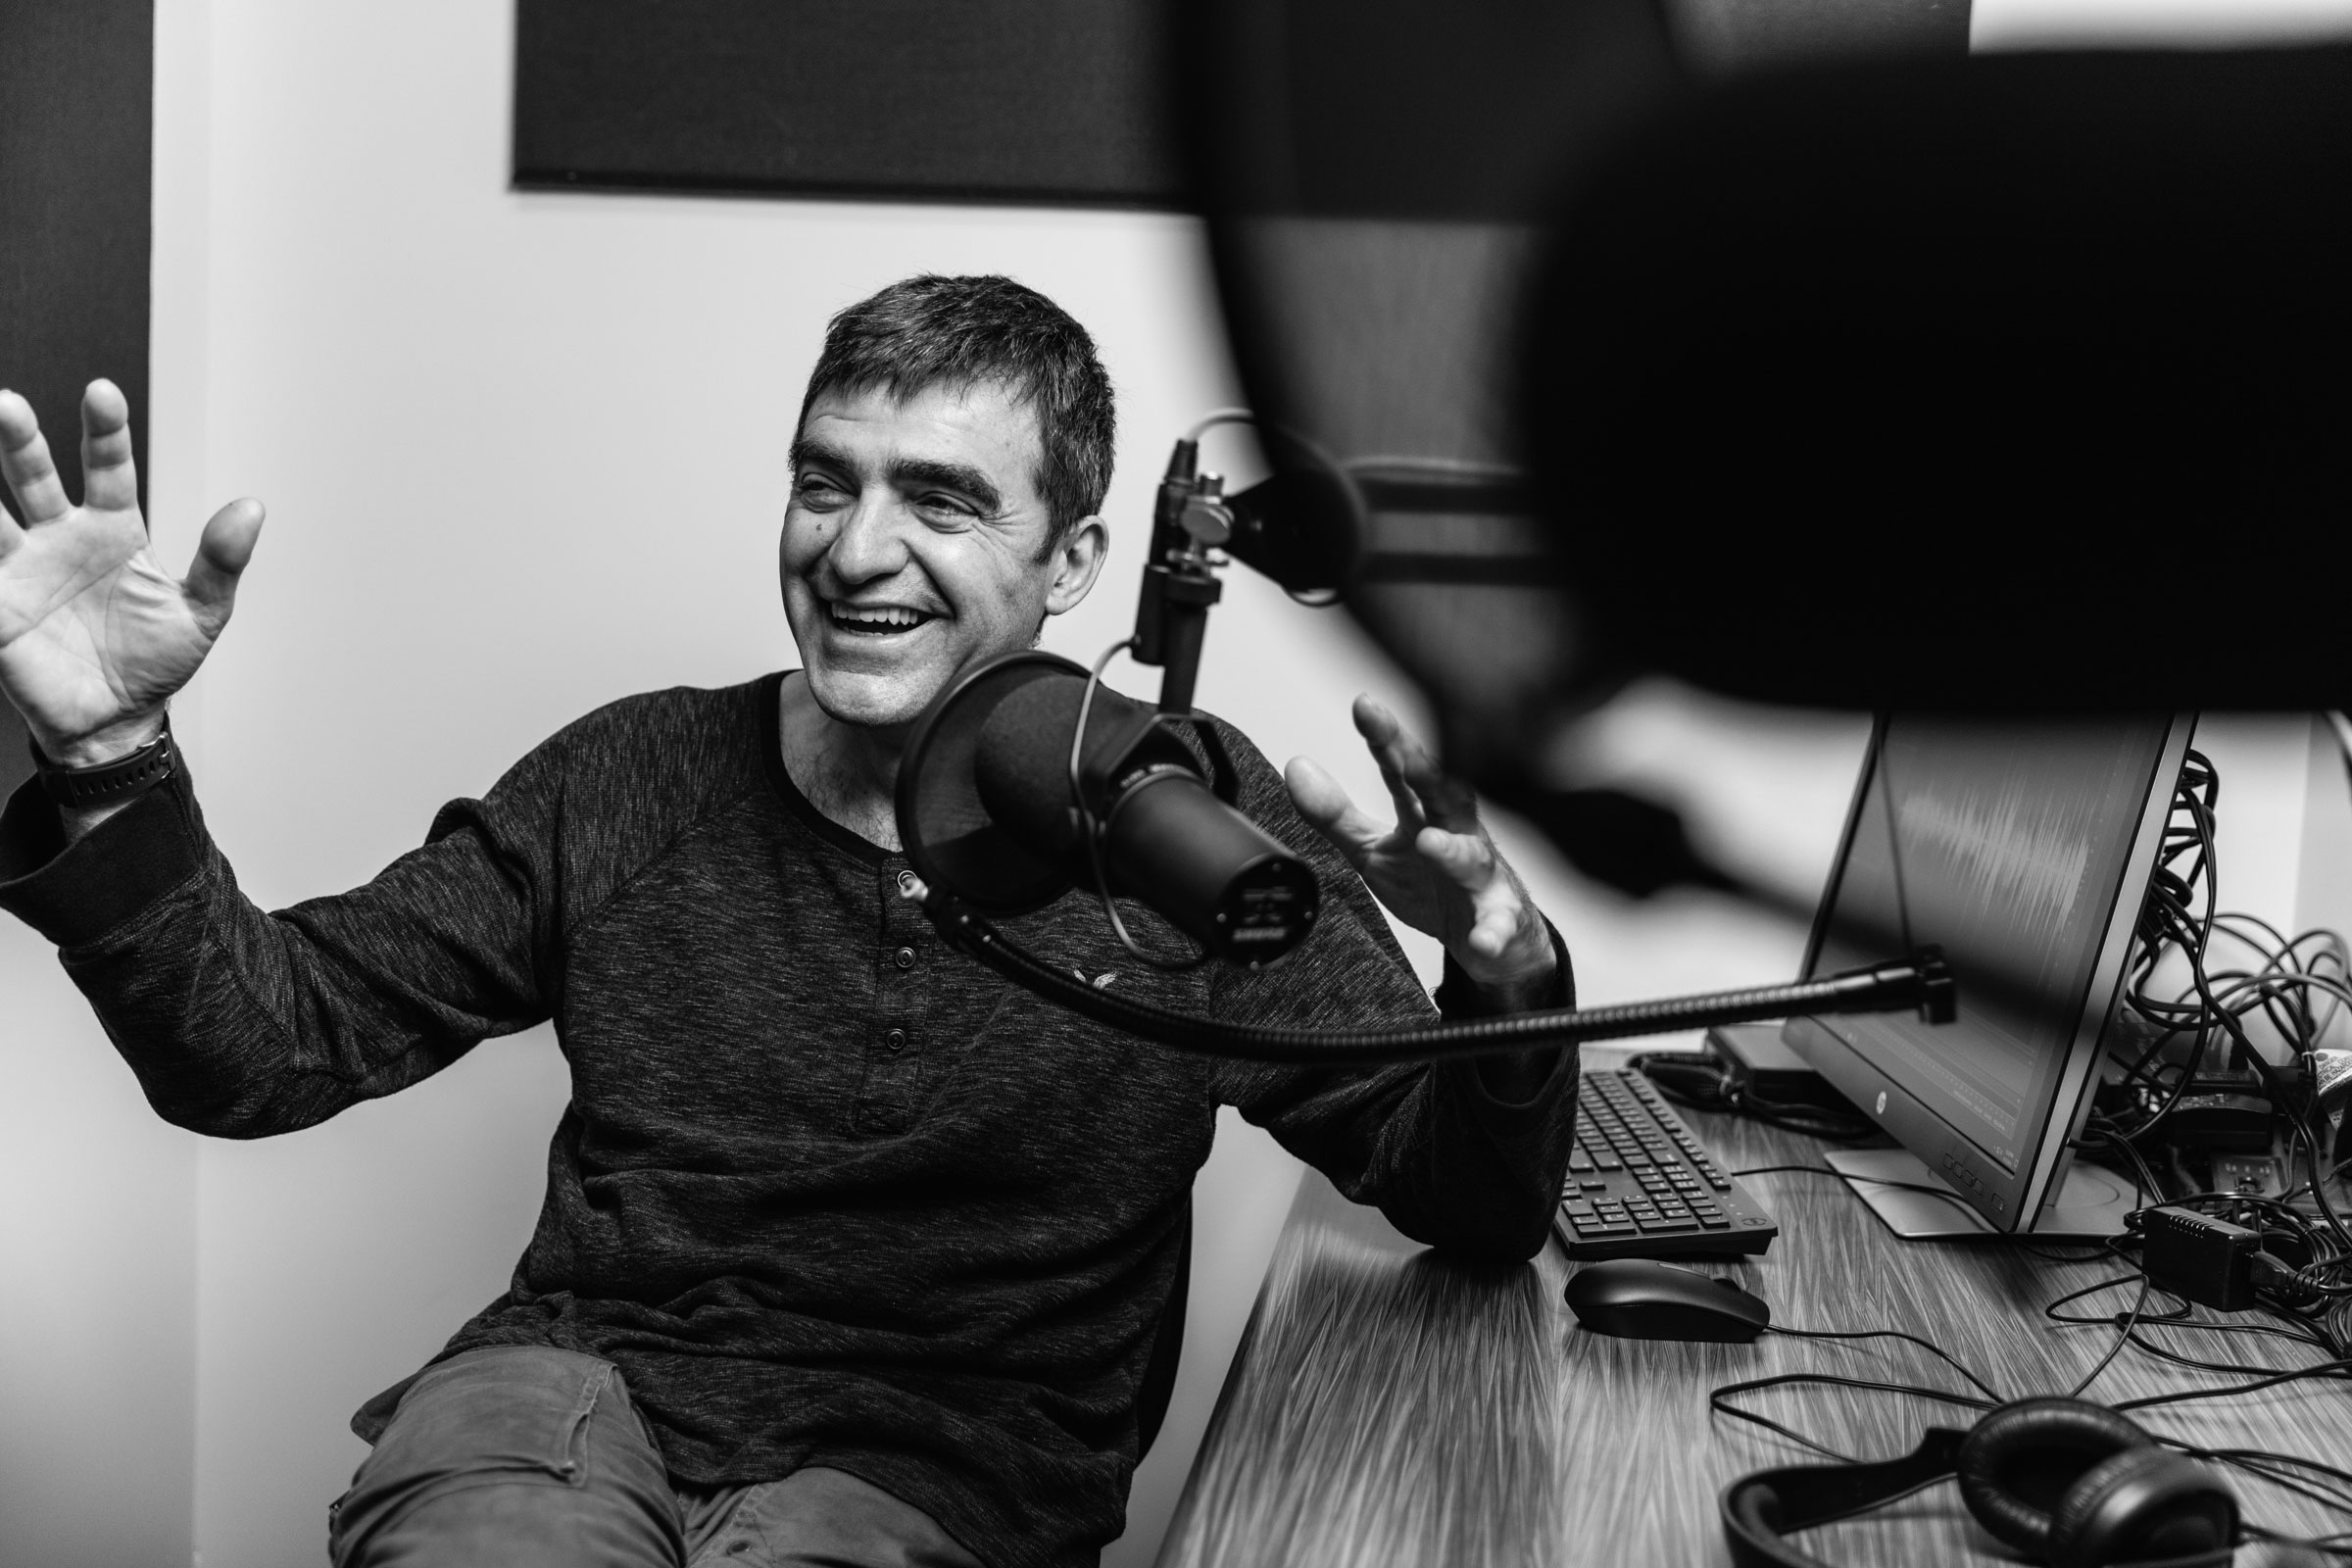 Photo of Podcast host Nino Ricci